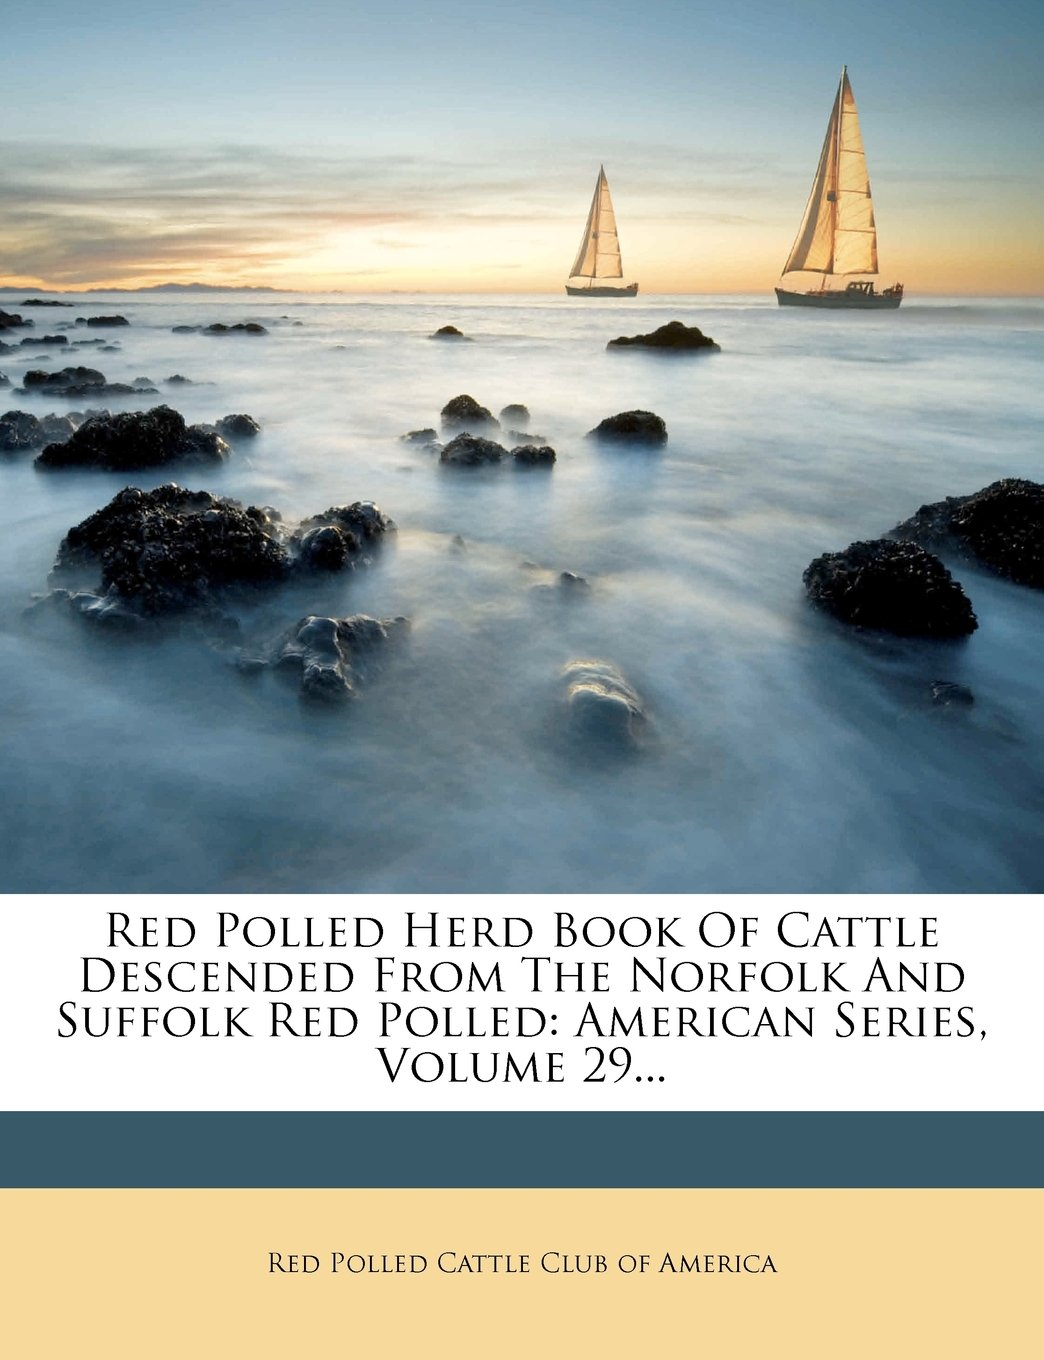 Red Polled Herd Book Of Cattle Descended From The Norfolk And Suffolk Red Polled: American Series, Volume 29... PDF